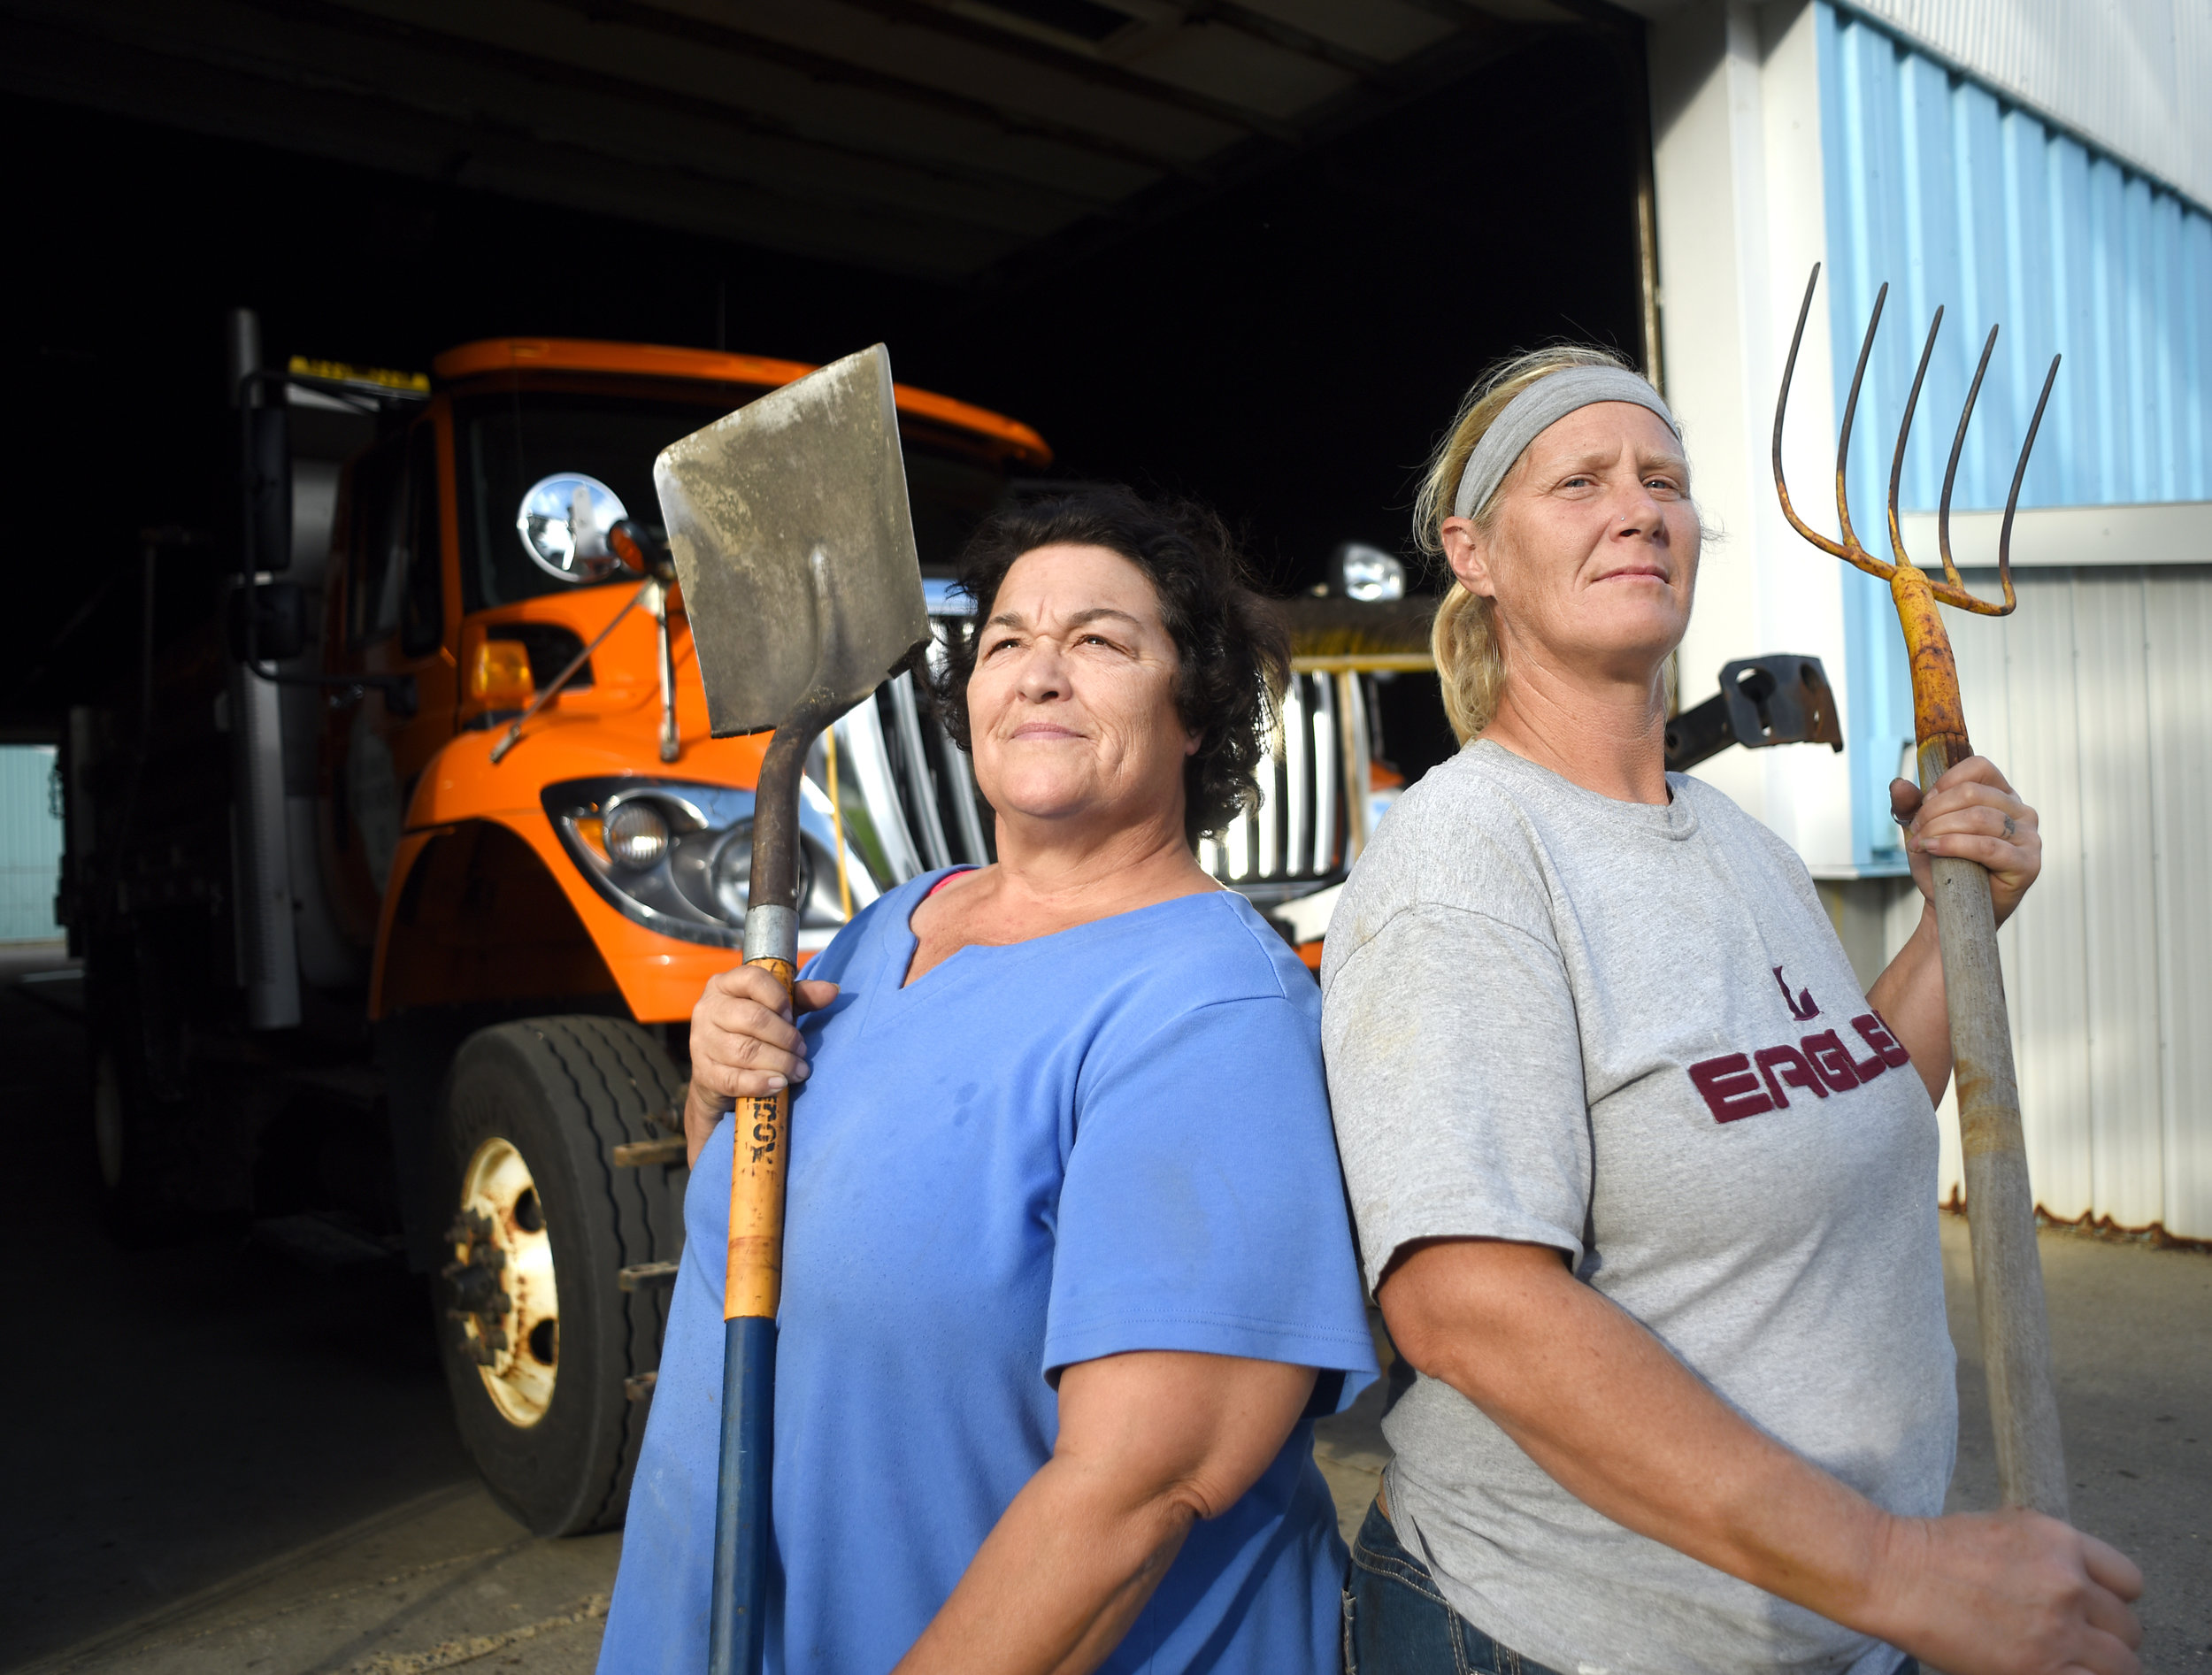 Cheri Foulker, 58, and Marsha Wilde, 45, are currently the only women permanent laborers for the Green County Highway Department. Foulker has been working for the high department for 25 years and Wilde has been there for about three months as of Oct. 4, 2016.